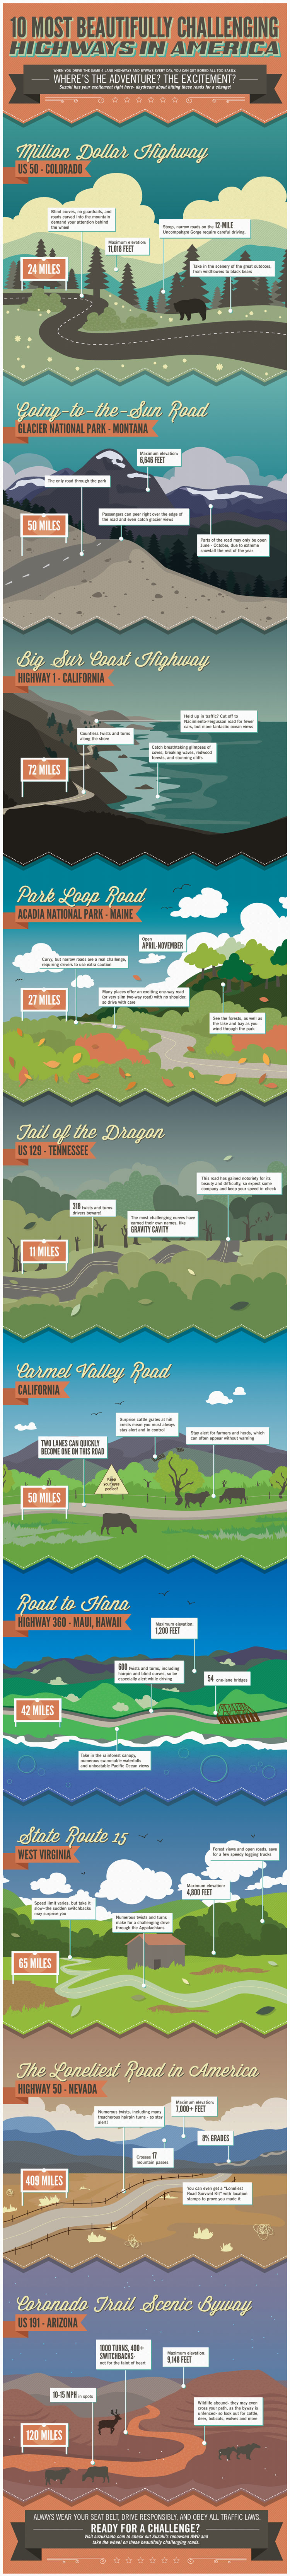 The 10 Most Beautifully Challenging Highways in America - An Infographic from Infographics Showcase